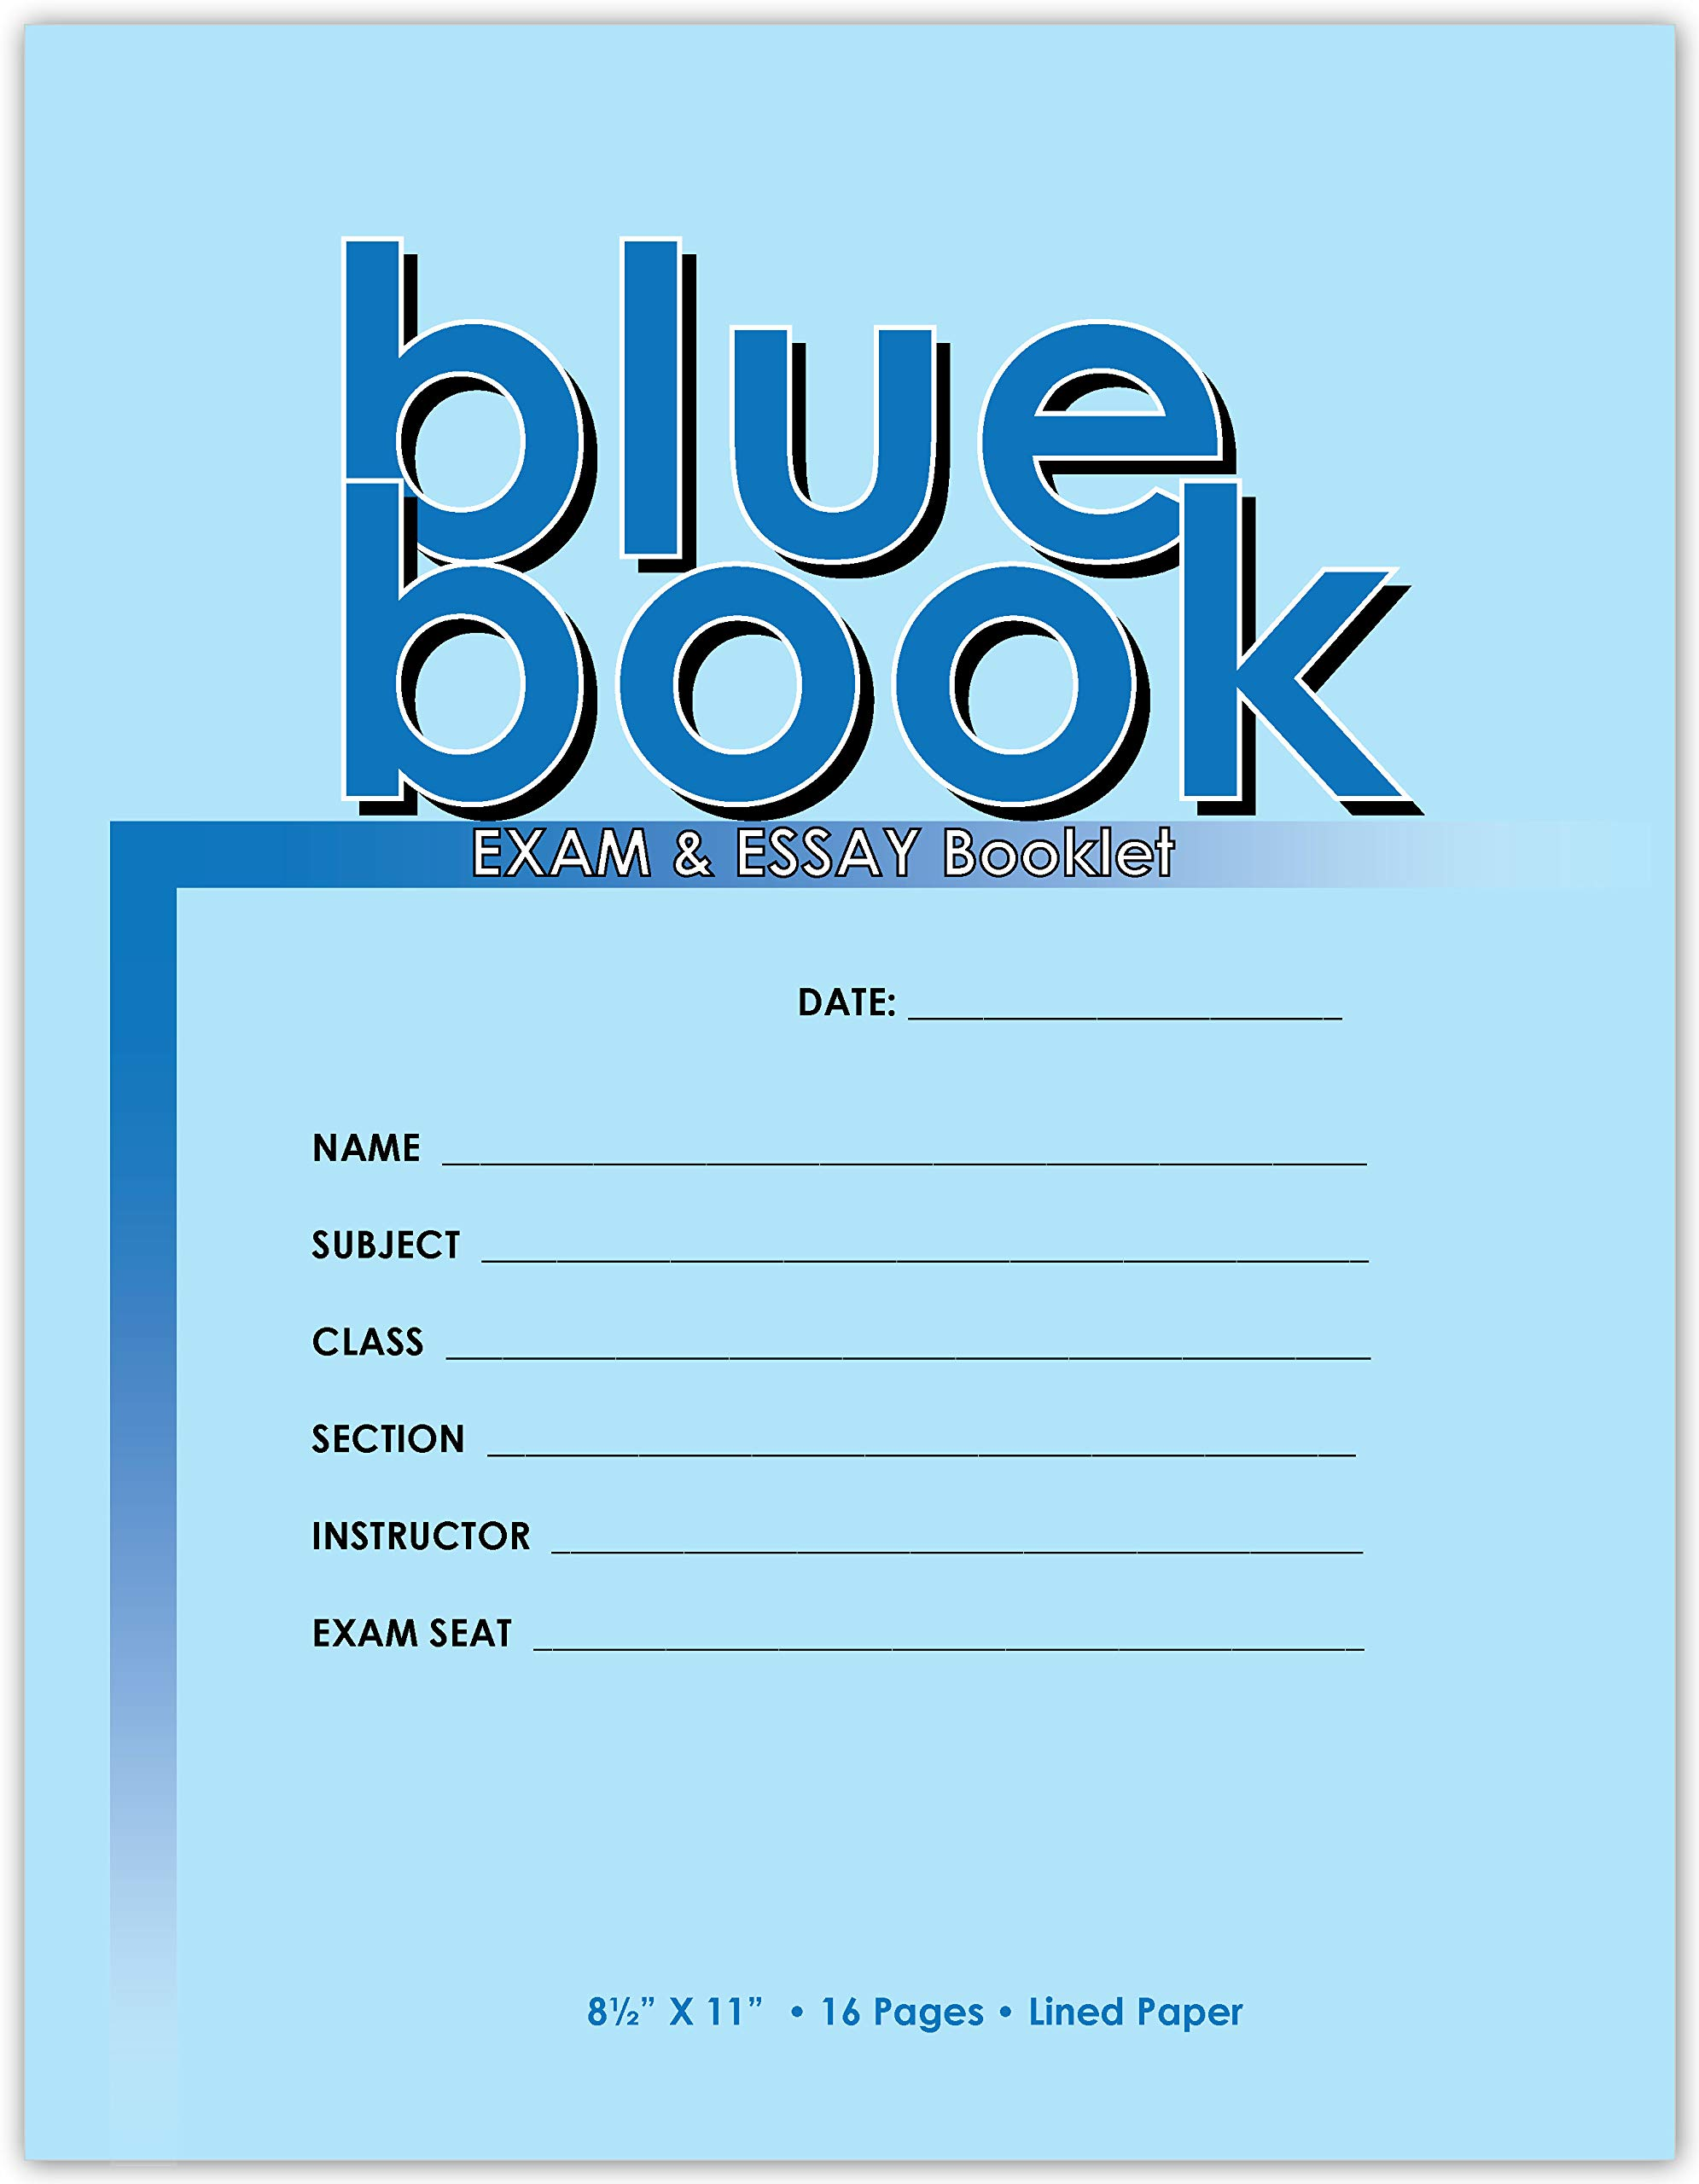 Exam Blue Book/Blue Exam Book/Blue Test Book (Ruled Format - 8.5'' x 11'' - 16) Saddle Stitched (Exam Book) 50 Booklets